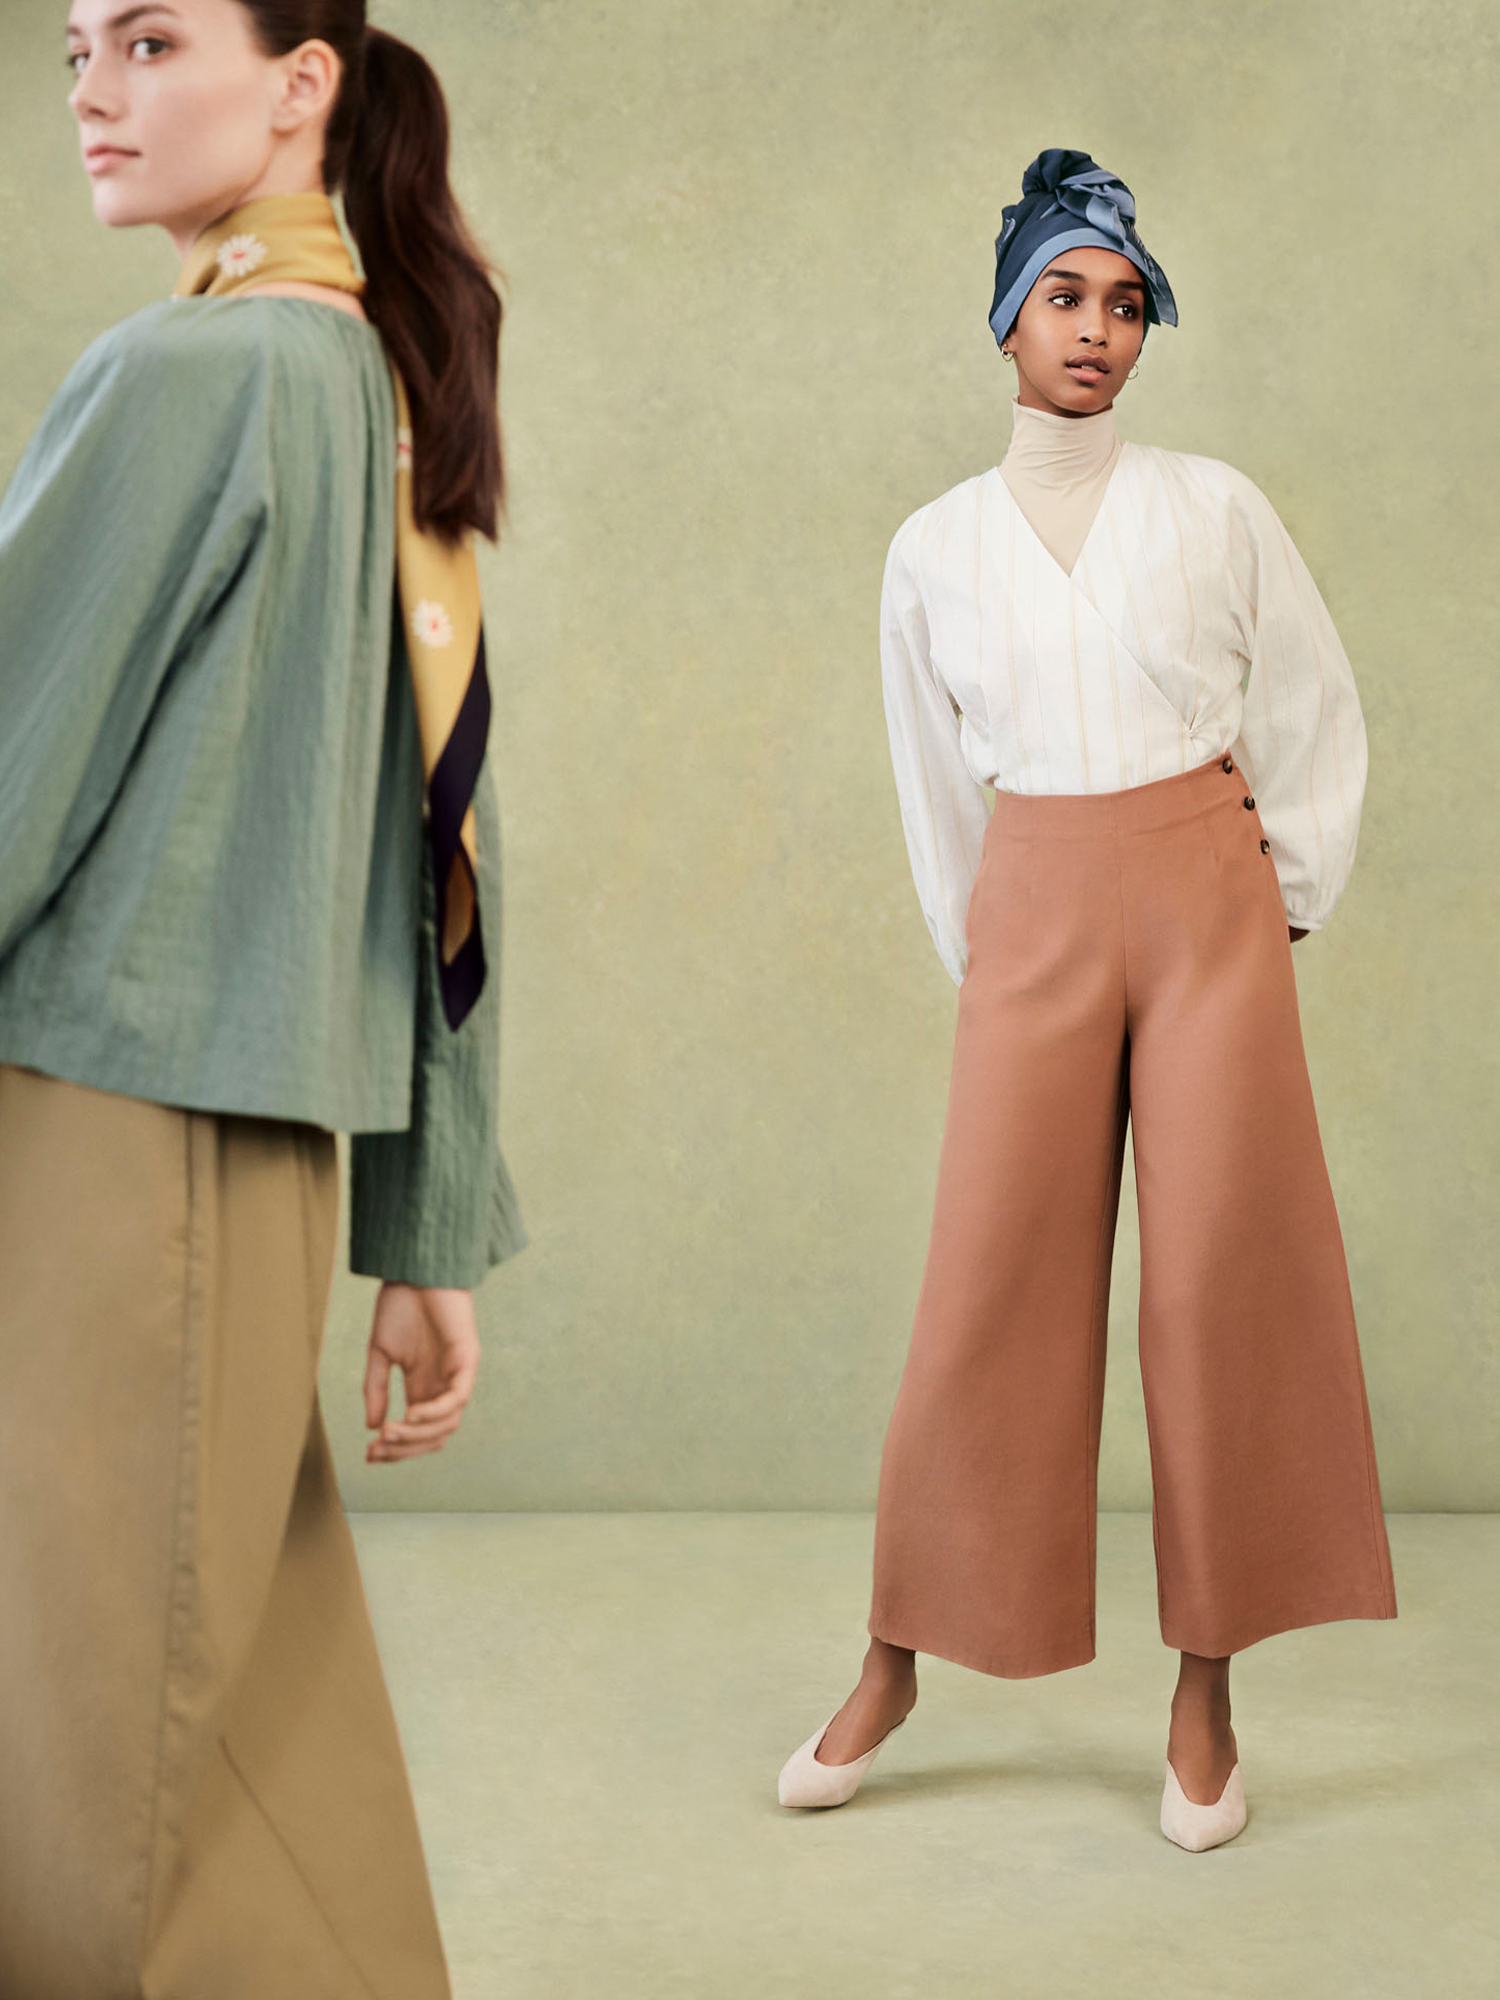 Model on right: W's HPJ Square print stole + W's HPJ Cache coeur striped L/S blouse + W's HPJ Rayon relaxed wide ankle pants